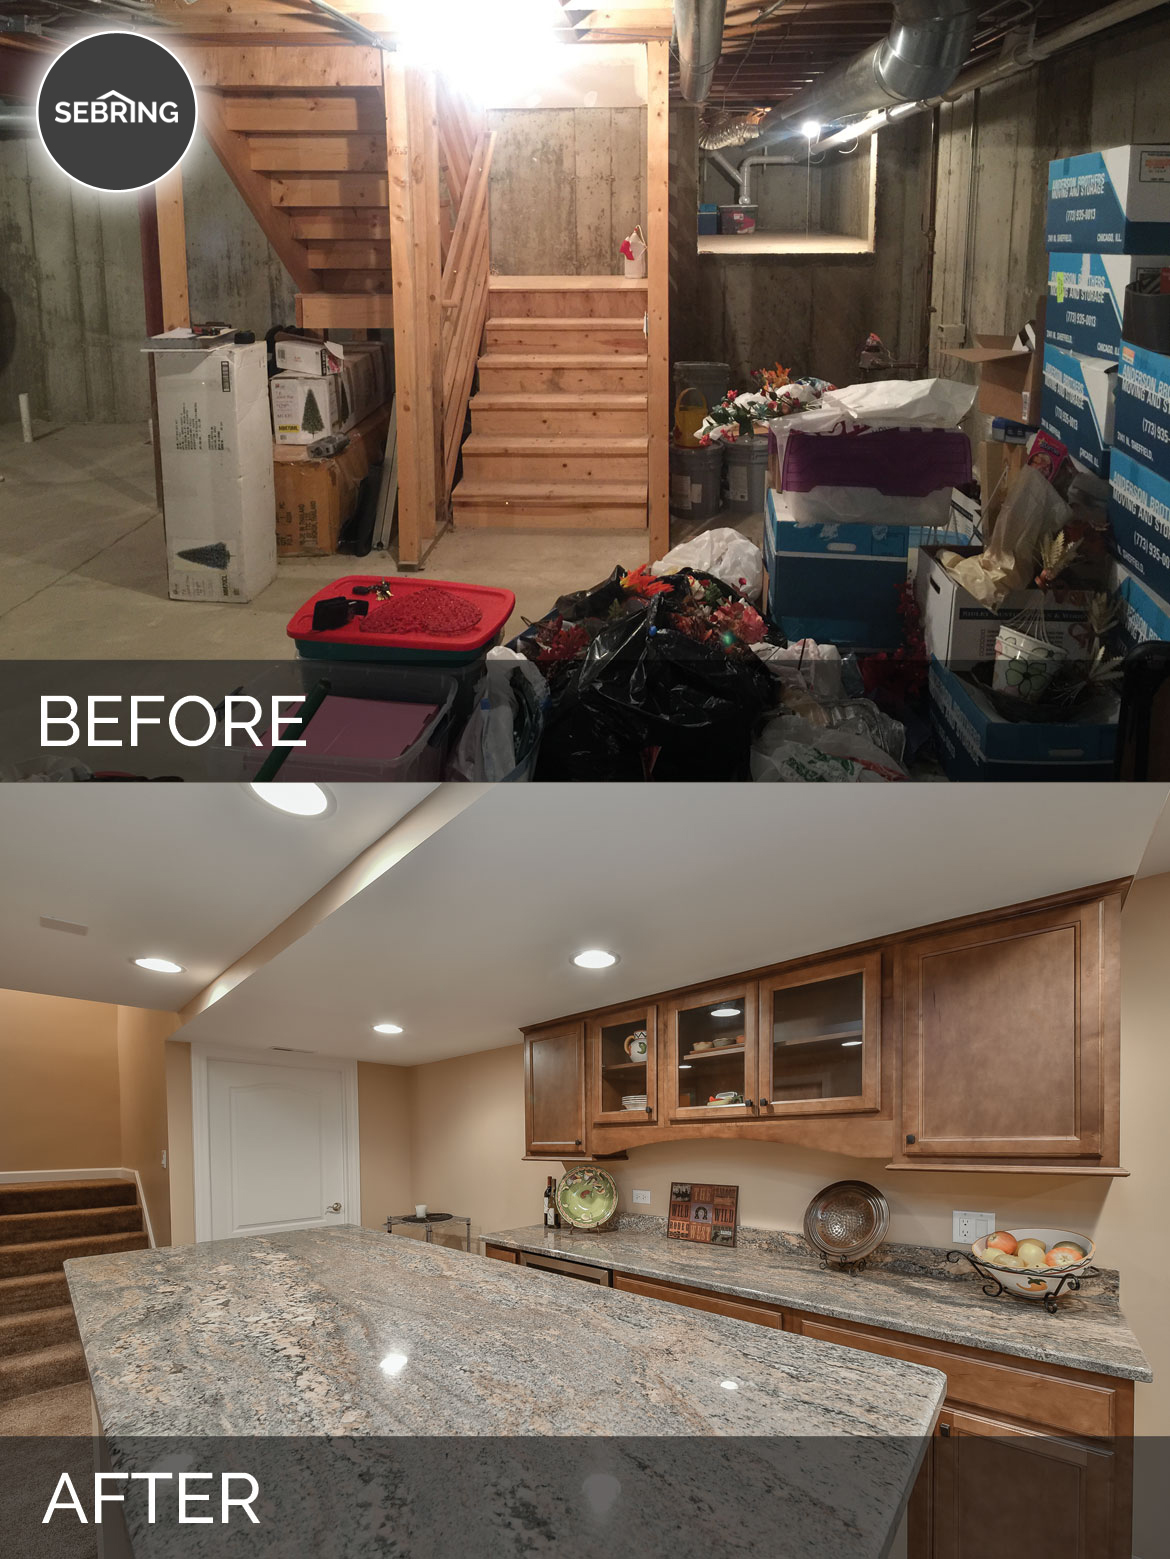 Carole's Basement Before & After Pictures